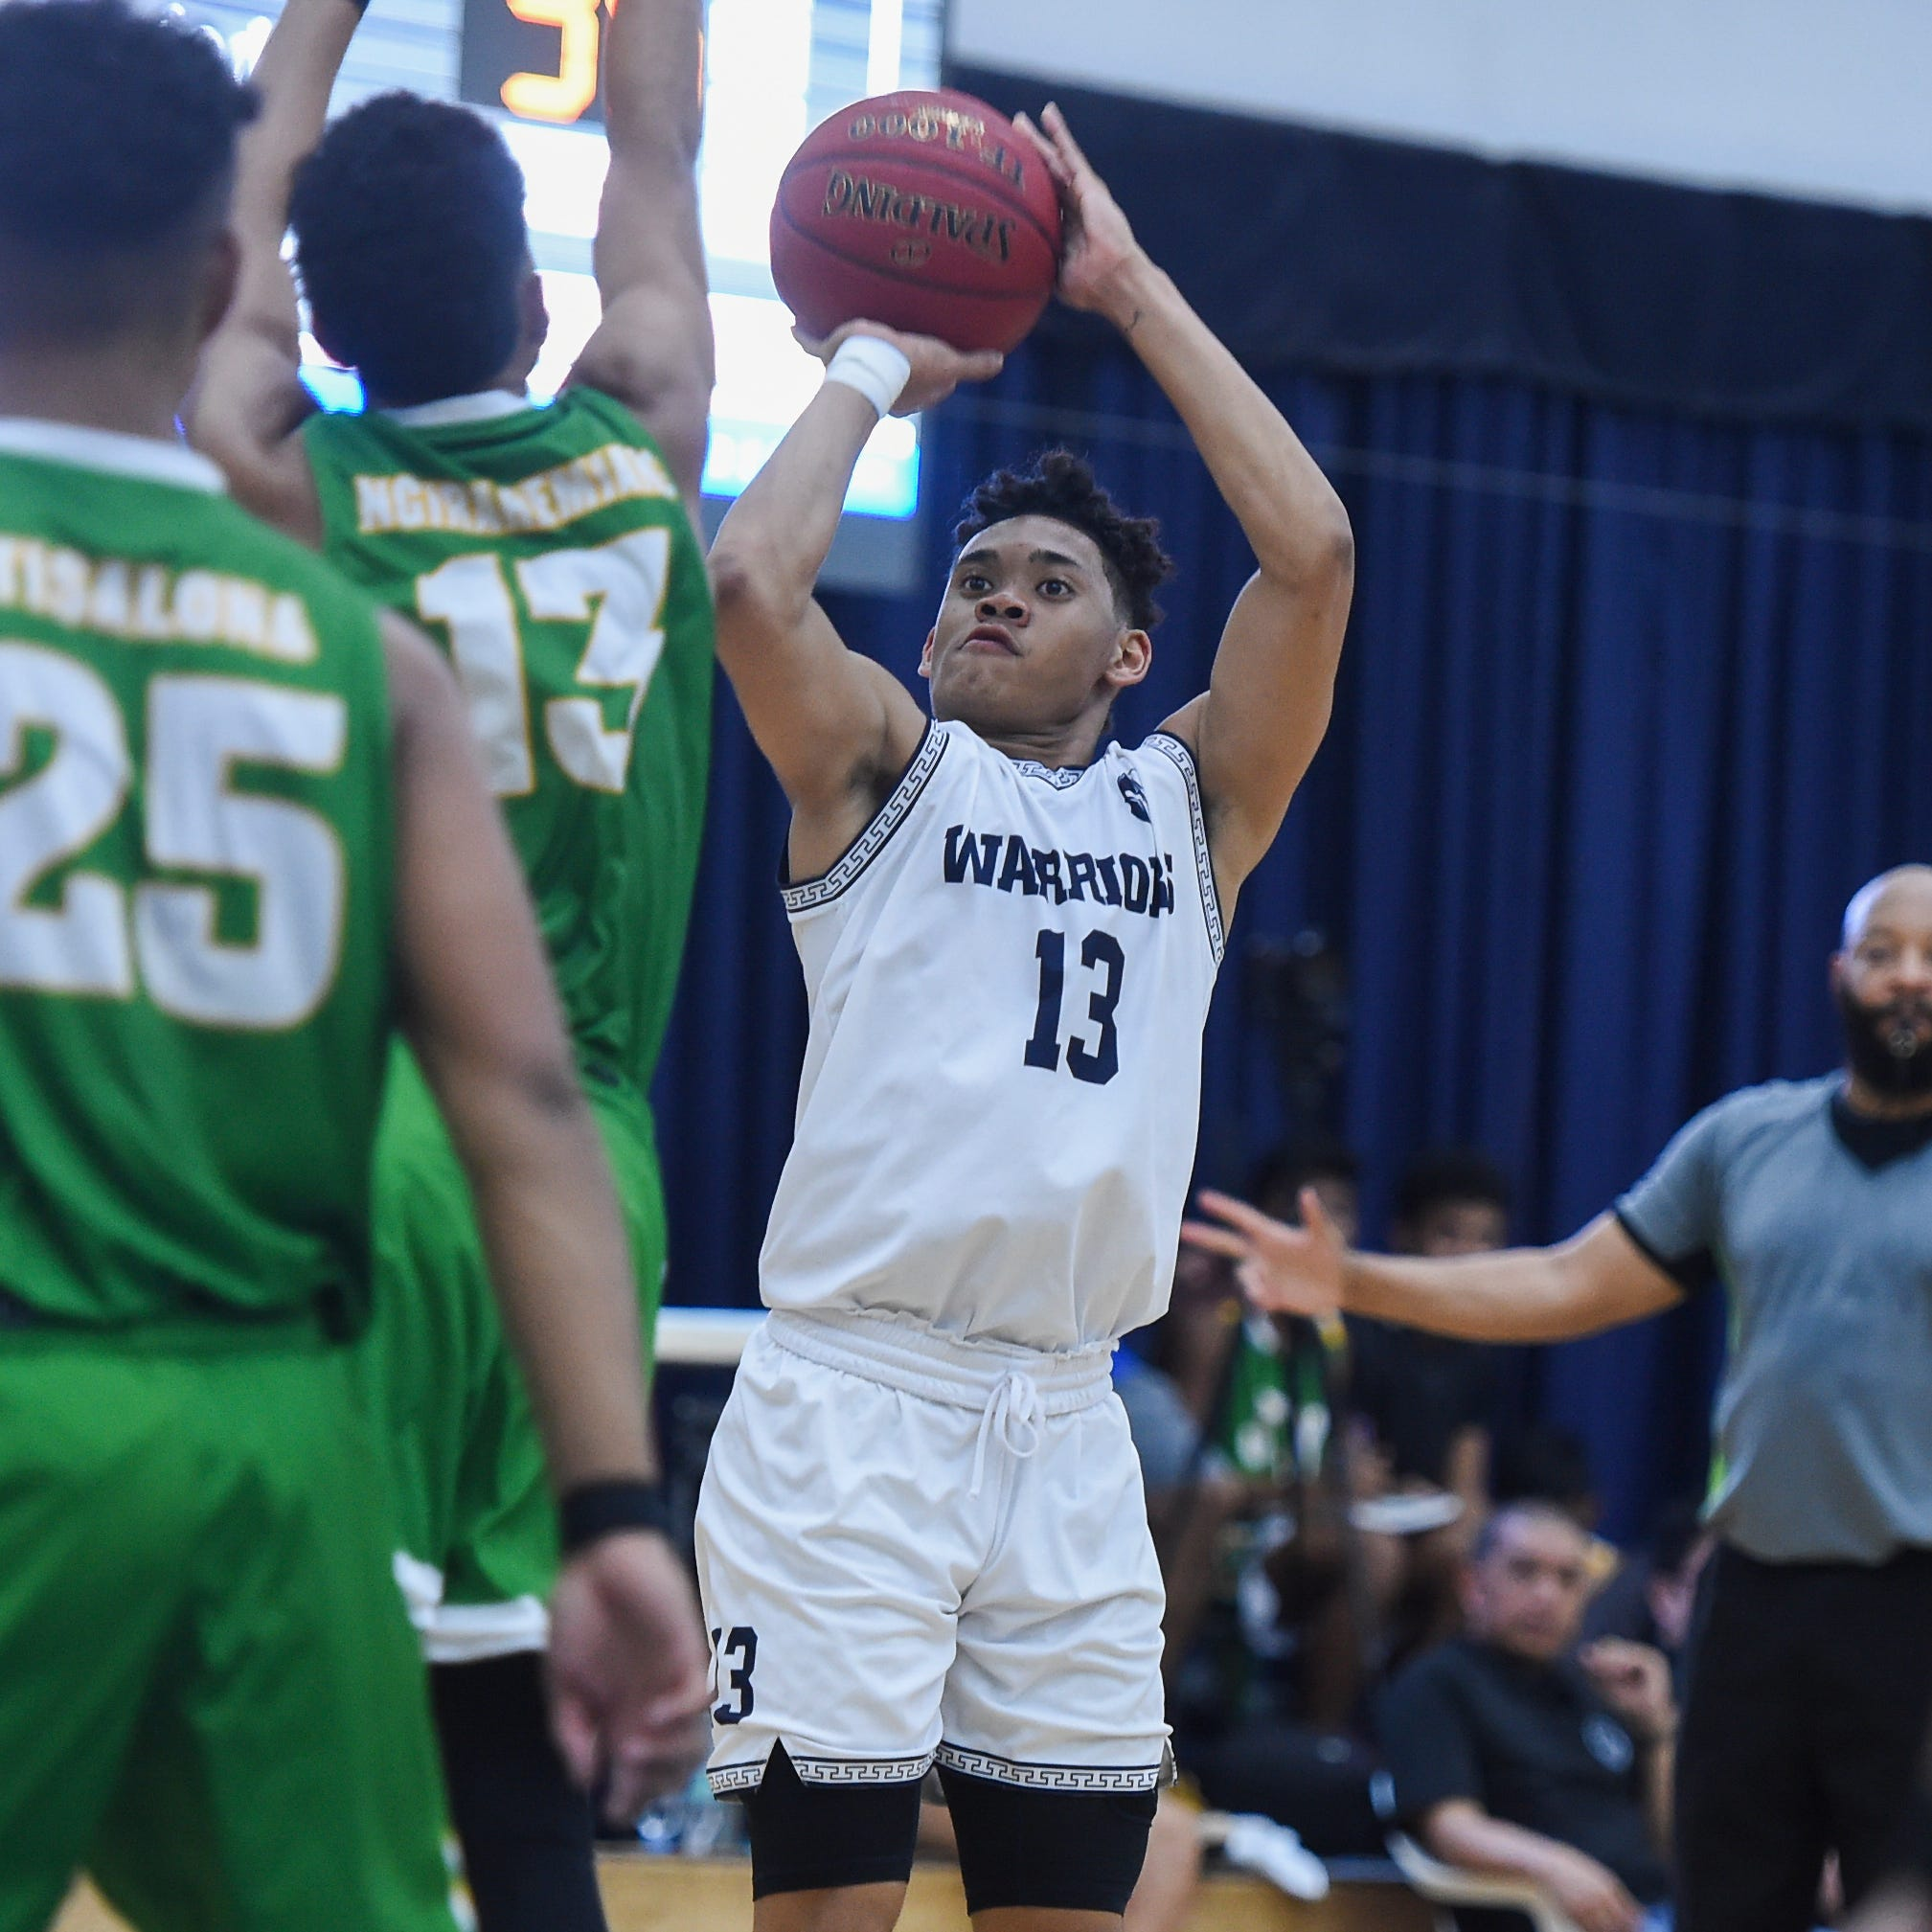 Warriors control game throughout, win 62-48 against rival JFK